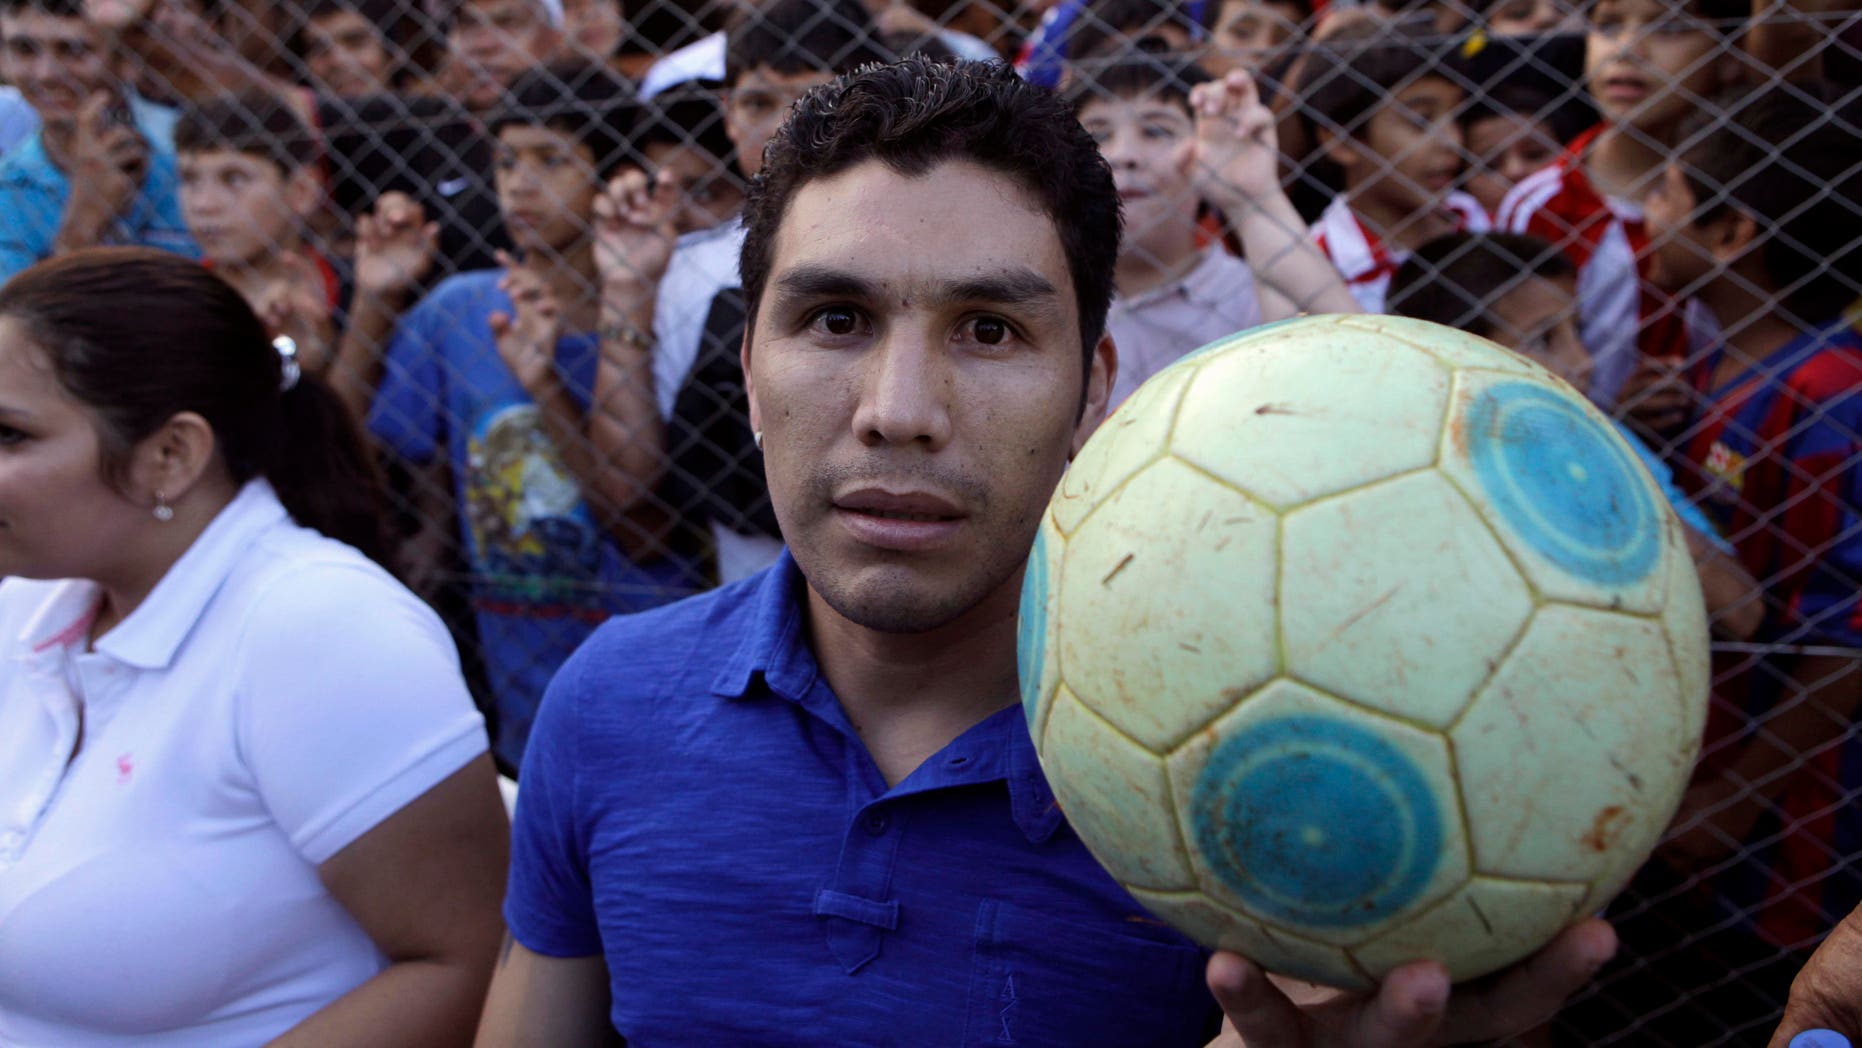 Former player of Mexico's America soccer team Salvador Cabanas, from Paraguay, poses for a picture during a friendly game by the first team he played in, 12 de Octubre, in Itagua, Paraguay, Thursday Dec. 30, 2010.  Cabanas, 30, was shot in the head at point-blank range 11 months ago in a Mexico City bar. He survived the attack but is not expected to play again. (AP Photo/Jorge Saenz)